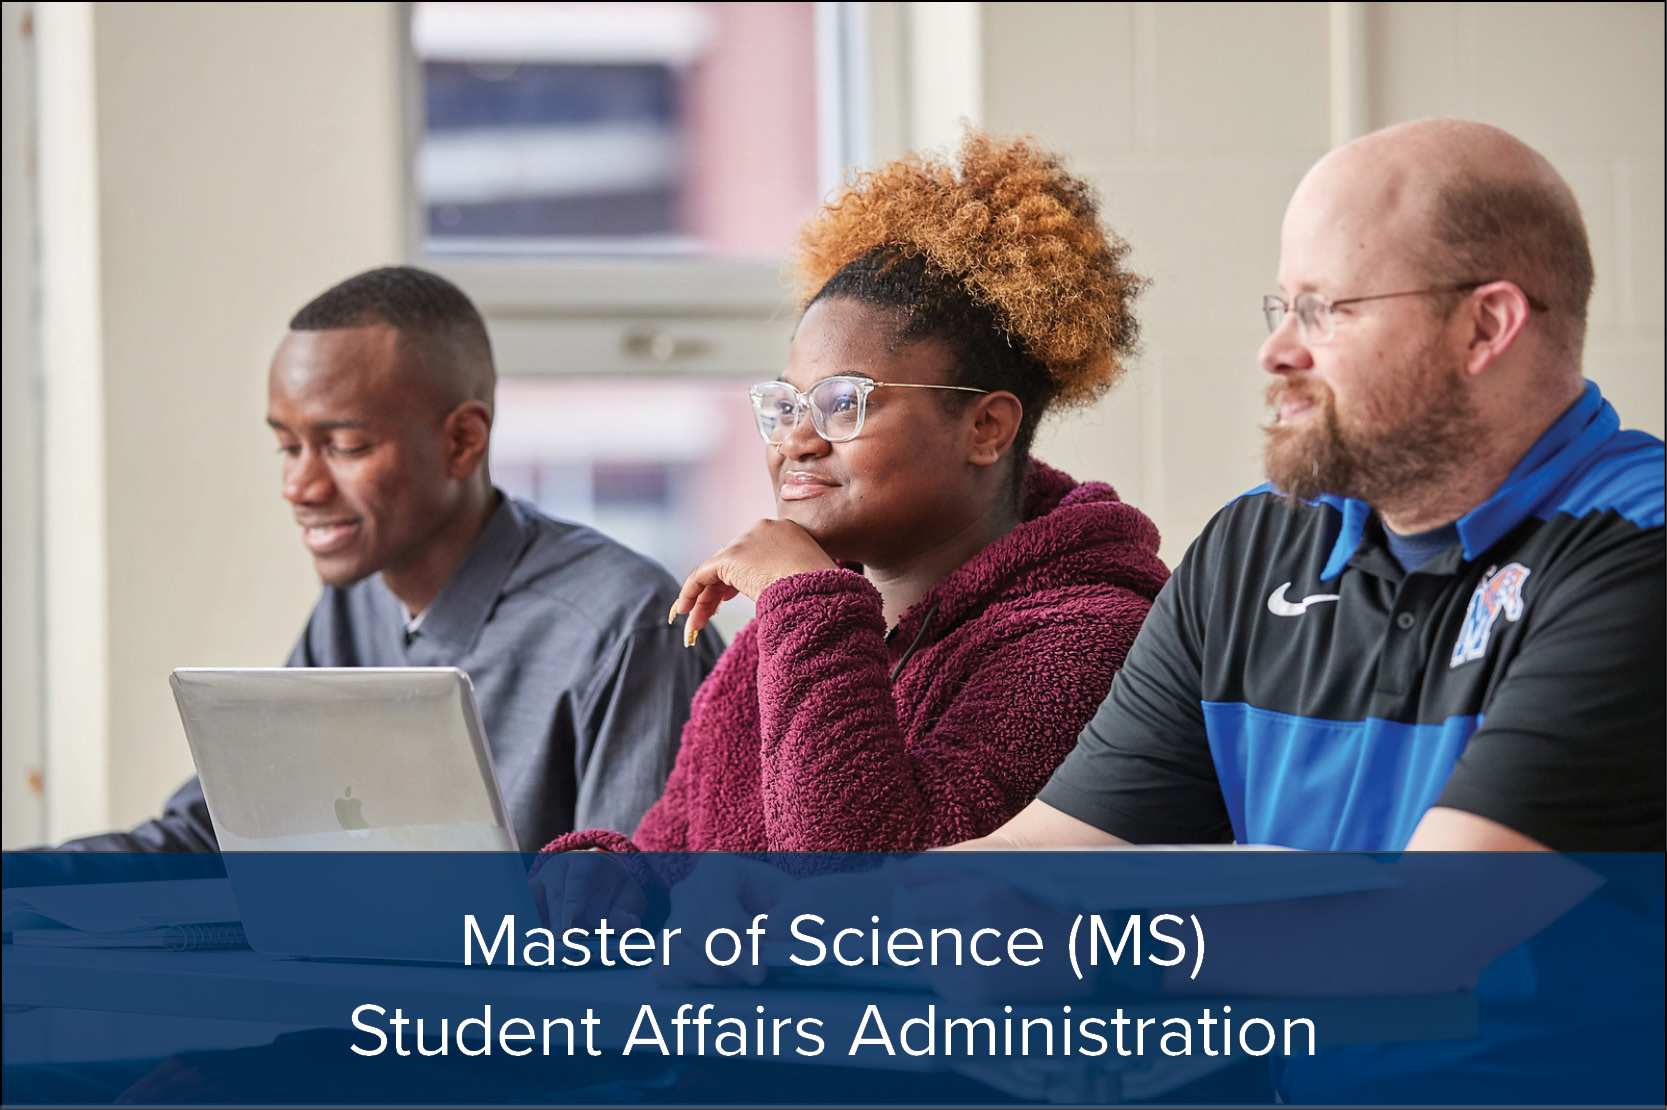 Master of Science: Student Affairs Administration